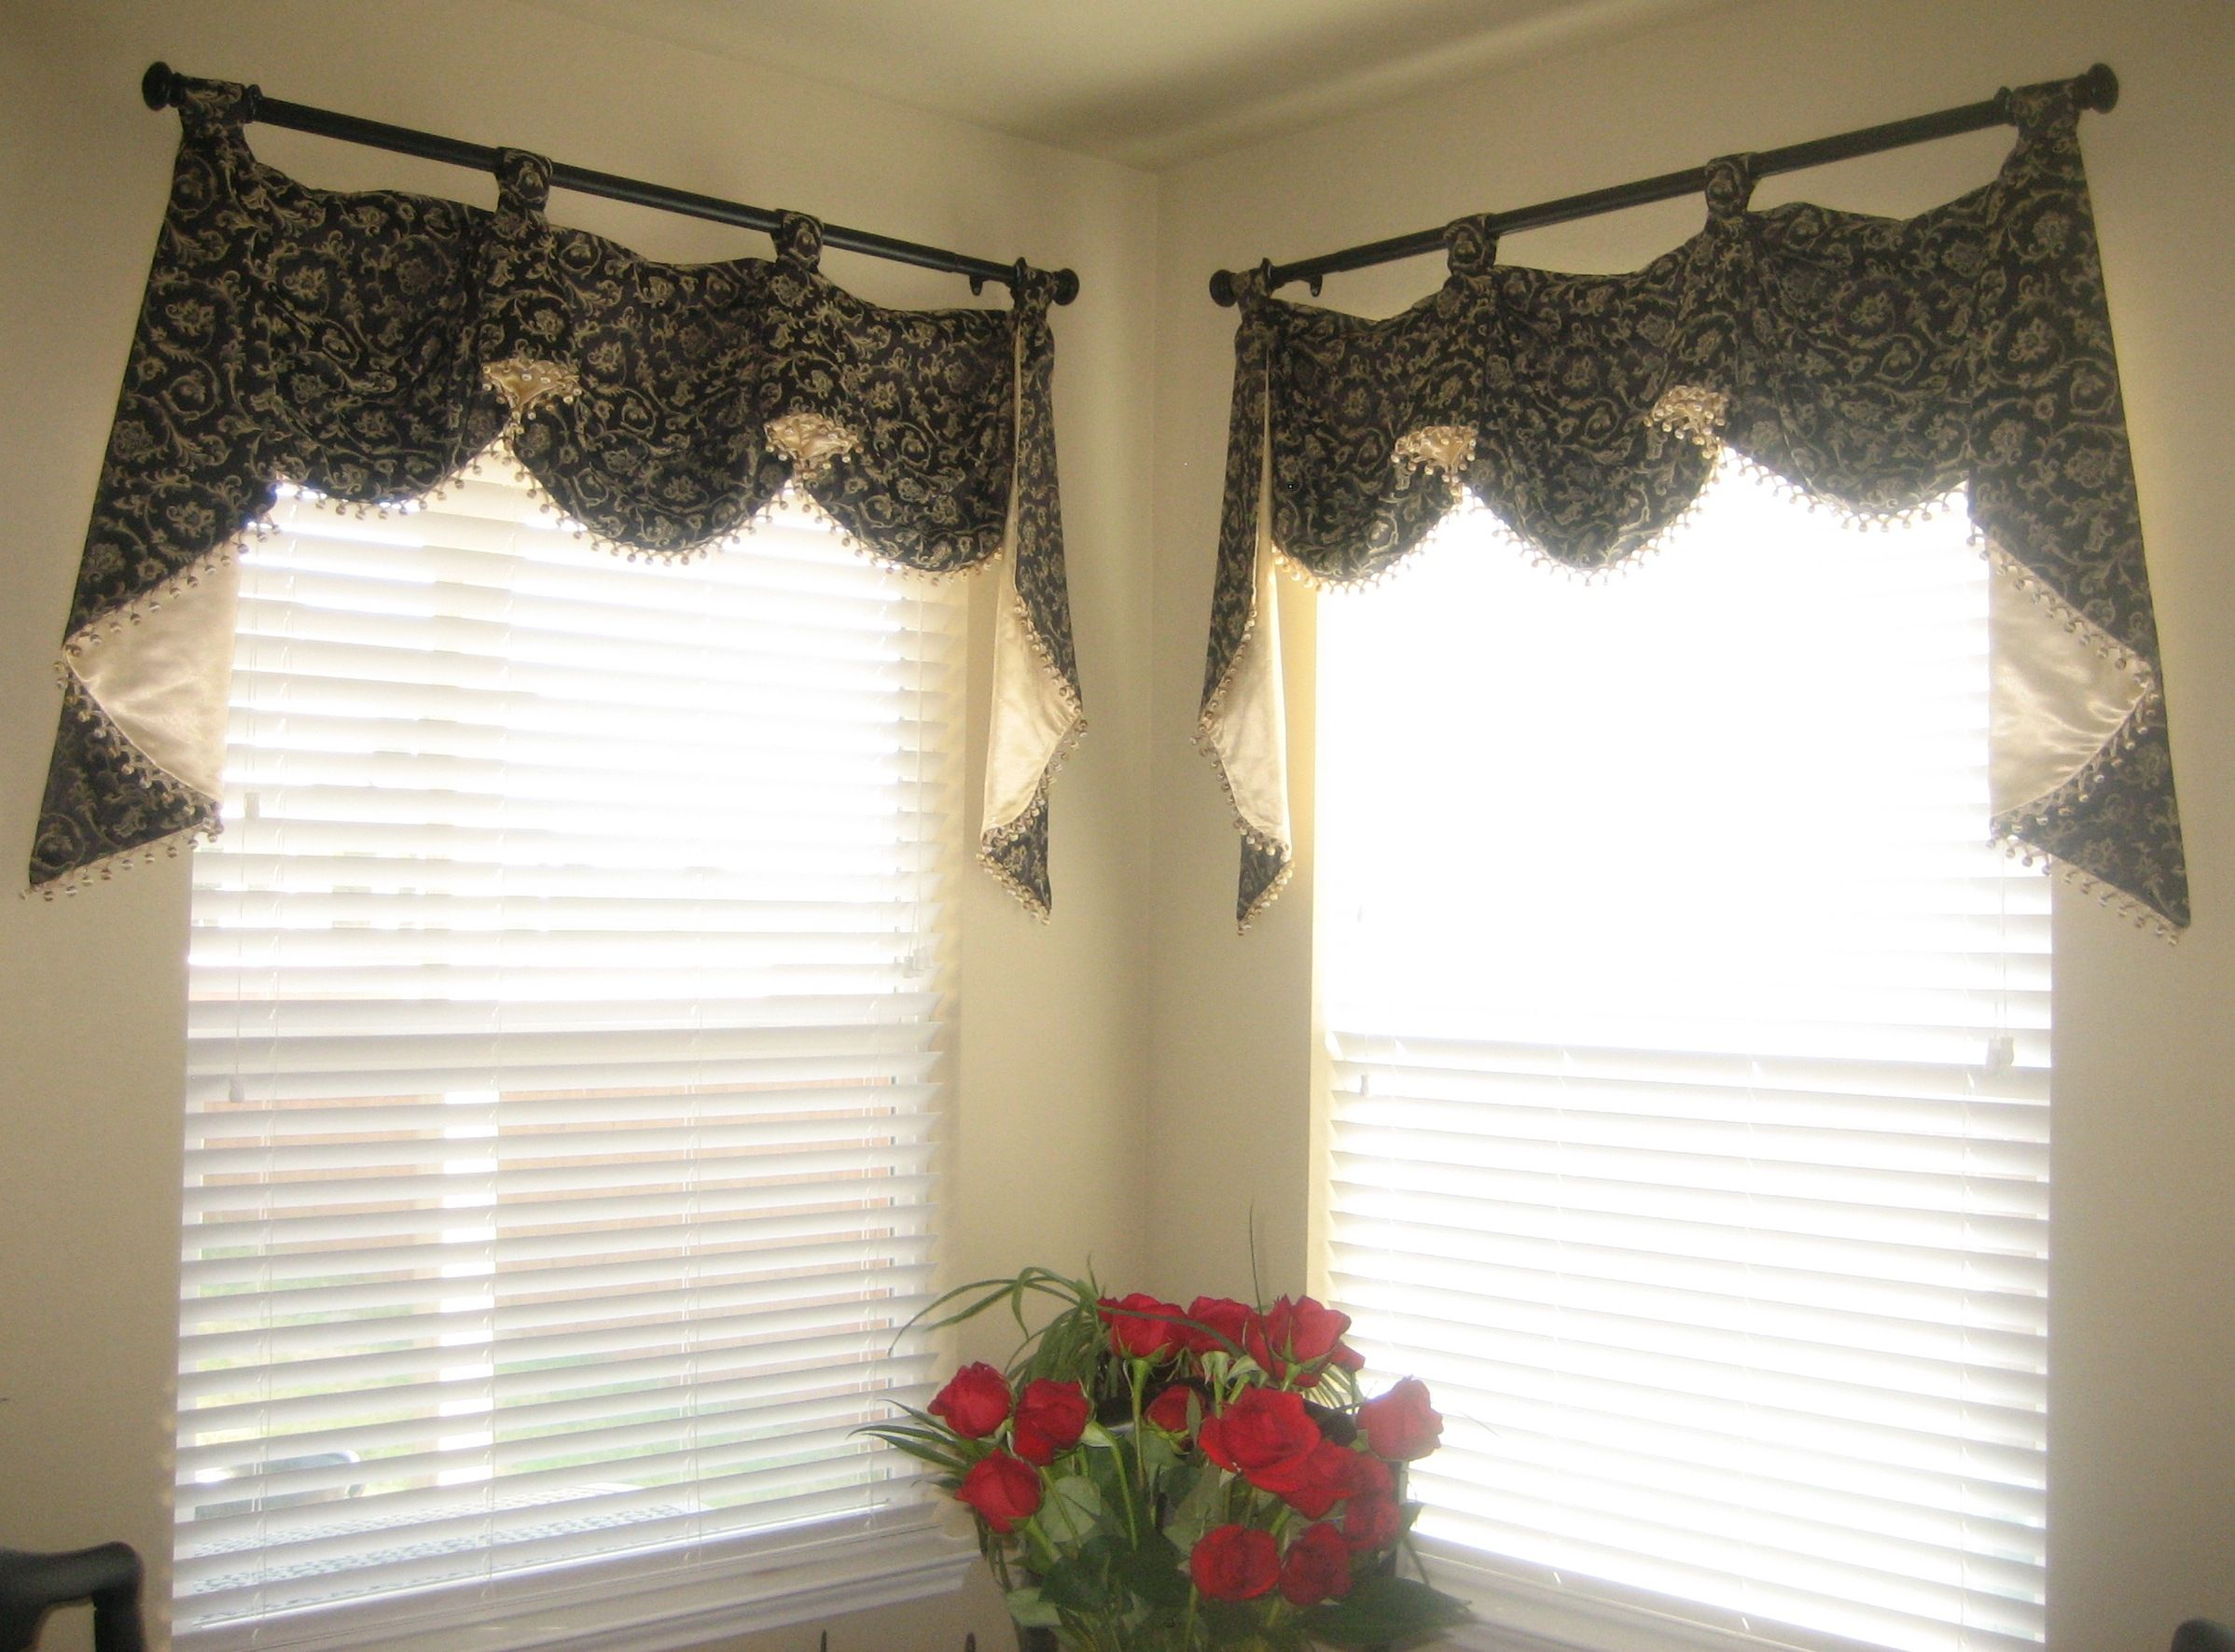 valances fan with trim combination pelmet lined valance blind and roman pin edge